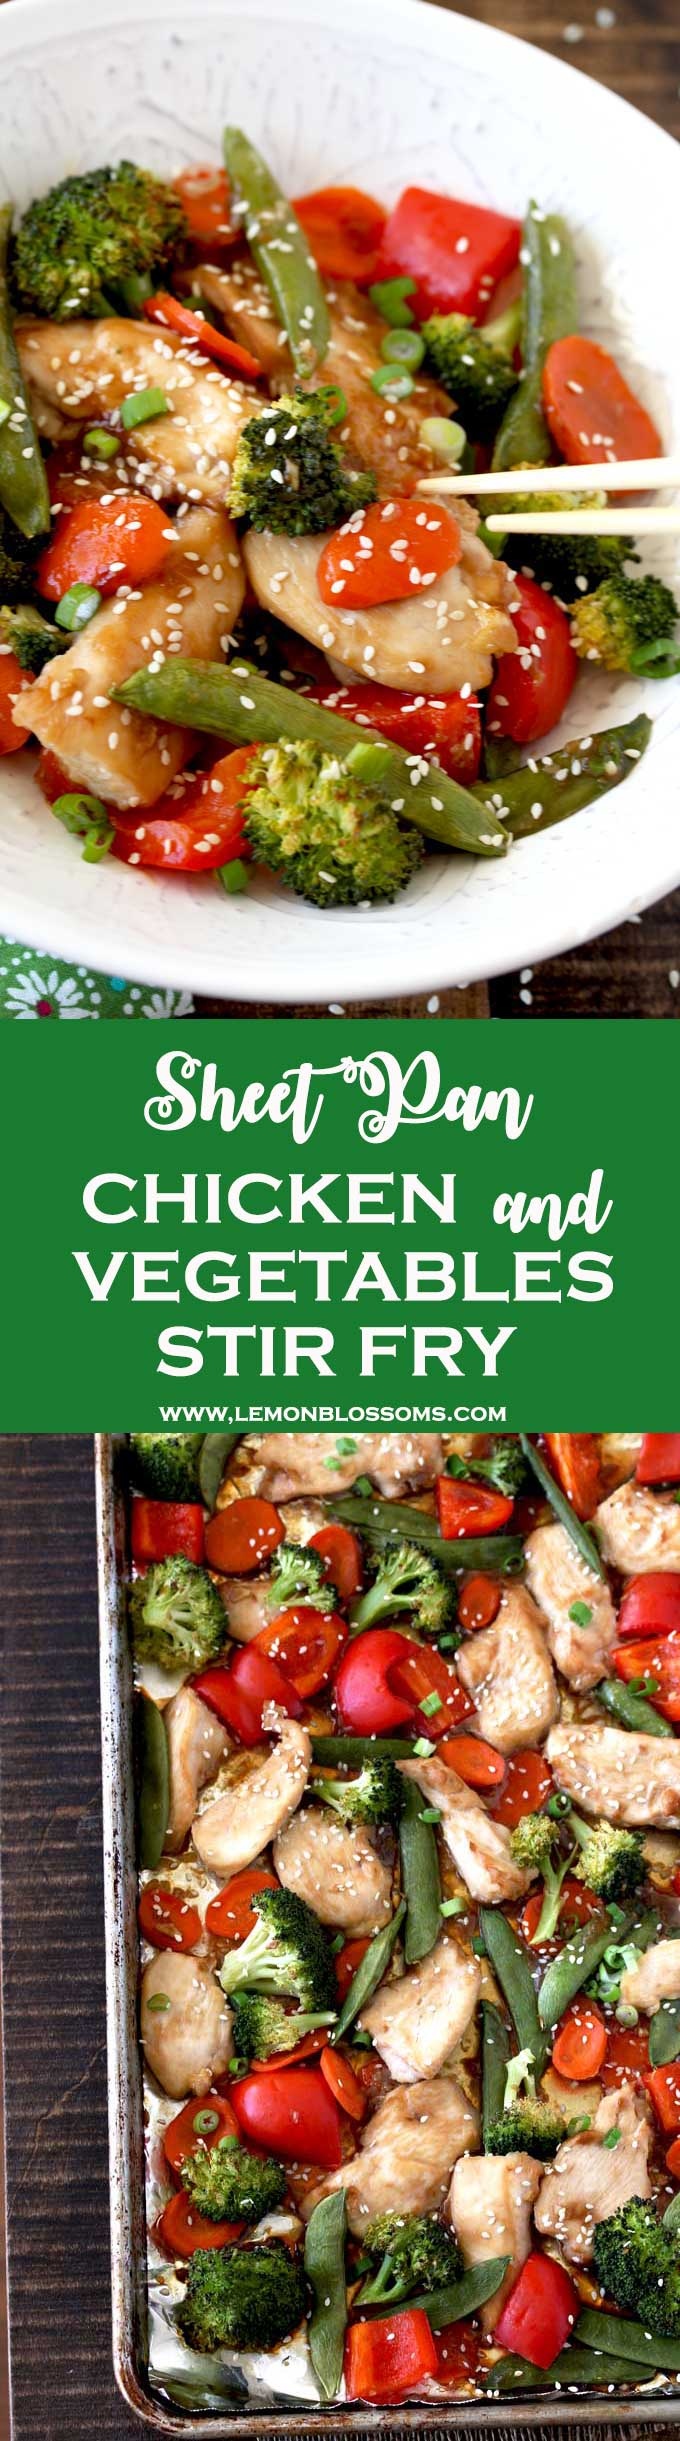 This easy Chicken and Vegetables Stir Fry  is healthy, light, full of great Asian flavors and made in one sheet pan for easy clean up! The perfect quick meal for busy weeknights. Tender pieces of chicken, carrots, red bell peppers, zucchini and sugar snap peas are cooked in a tasty and easy to make stir fry sauce.#onepanmeal #chicken #Asian #stirfry #healthy #dinner